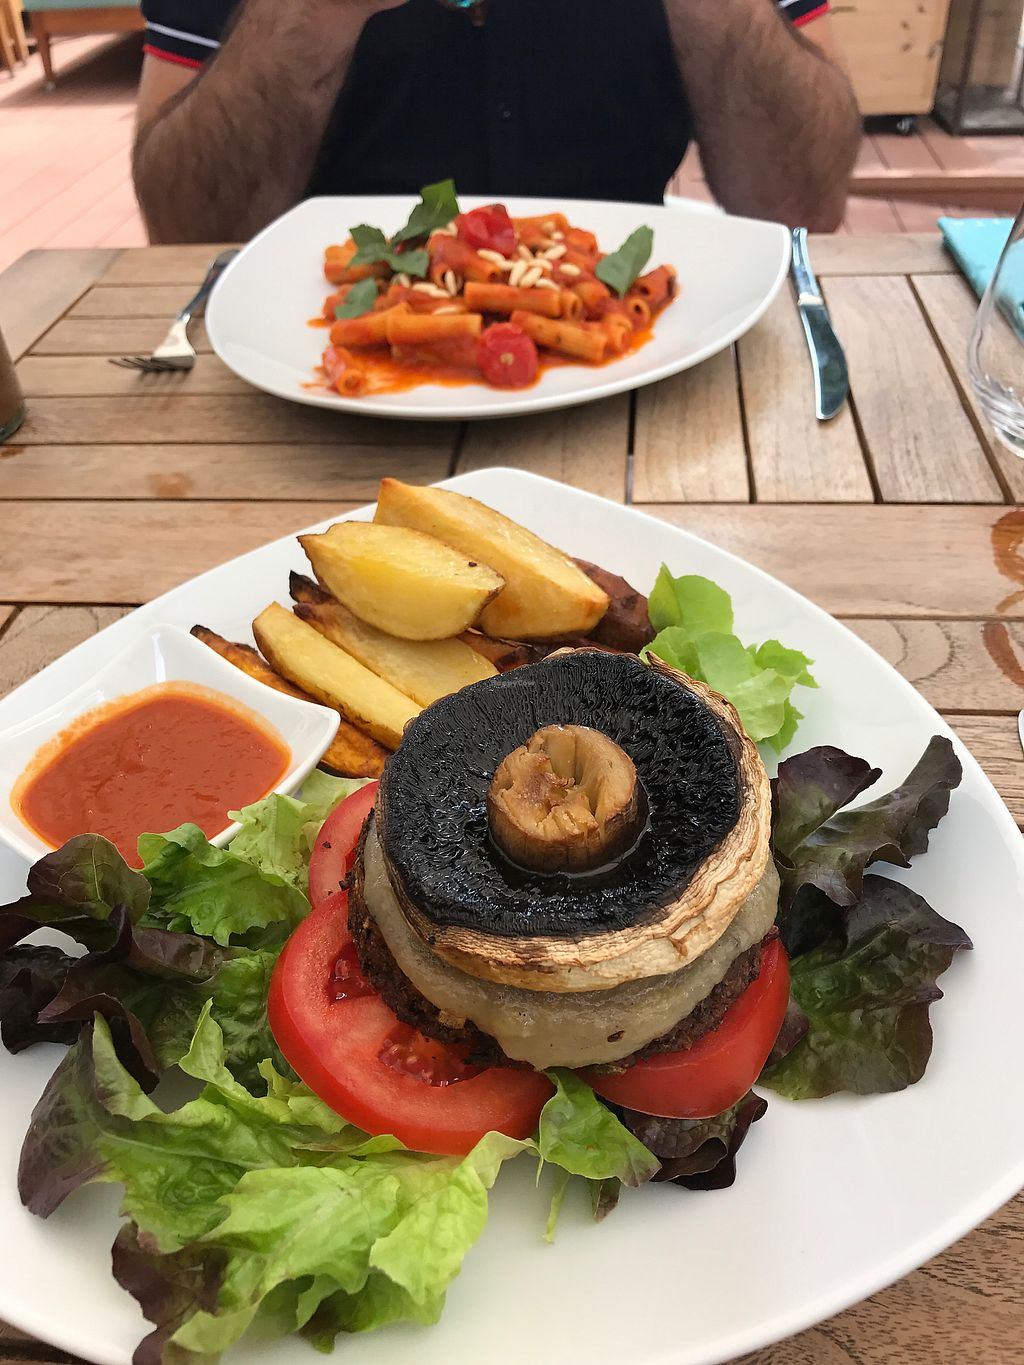 """Photo of Eqvita  by <a href=""""/members/profile/ChristieDelaney"""">ChristieDelaney</a> <br/>Burger and macaroni for main <br/> August 30, 2017  - <a href='/contact/abuse/image/72358/298944'>Report</a>"""